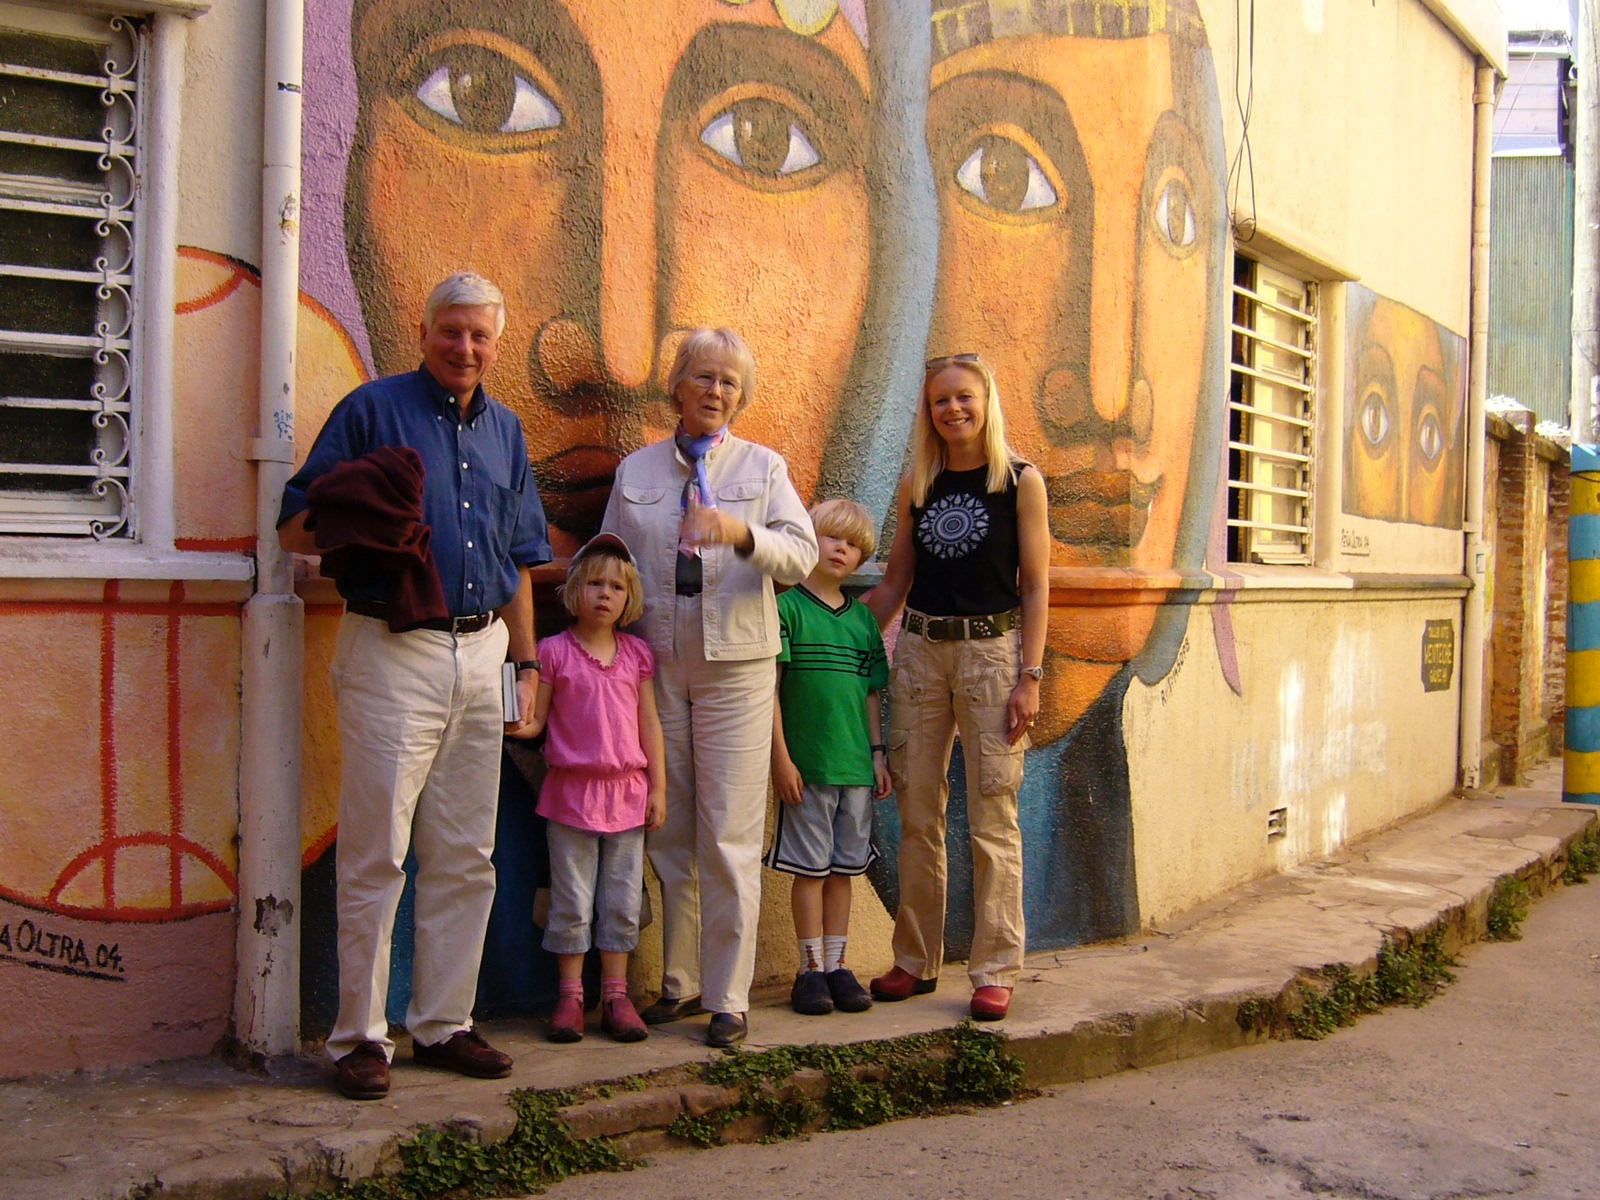 A family photo in front of one of the city's many murals.